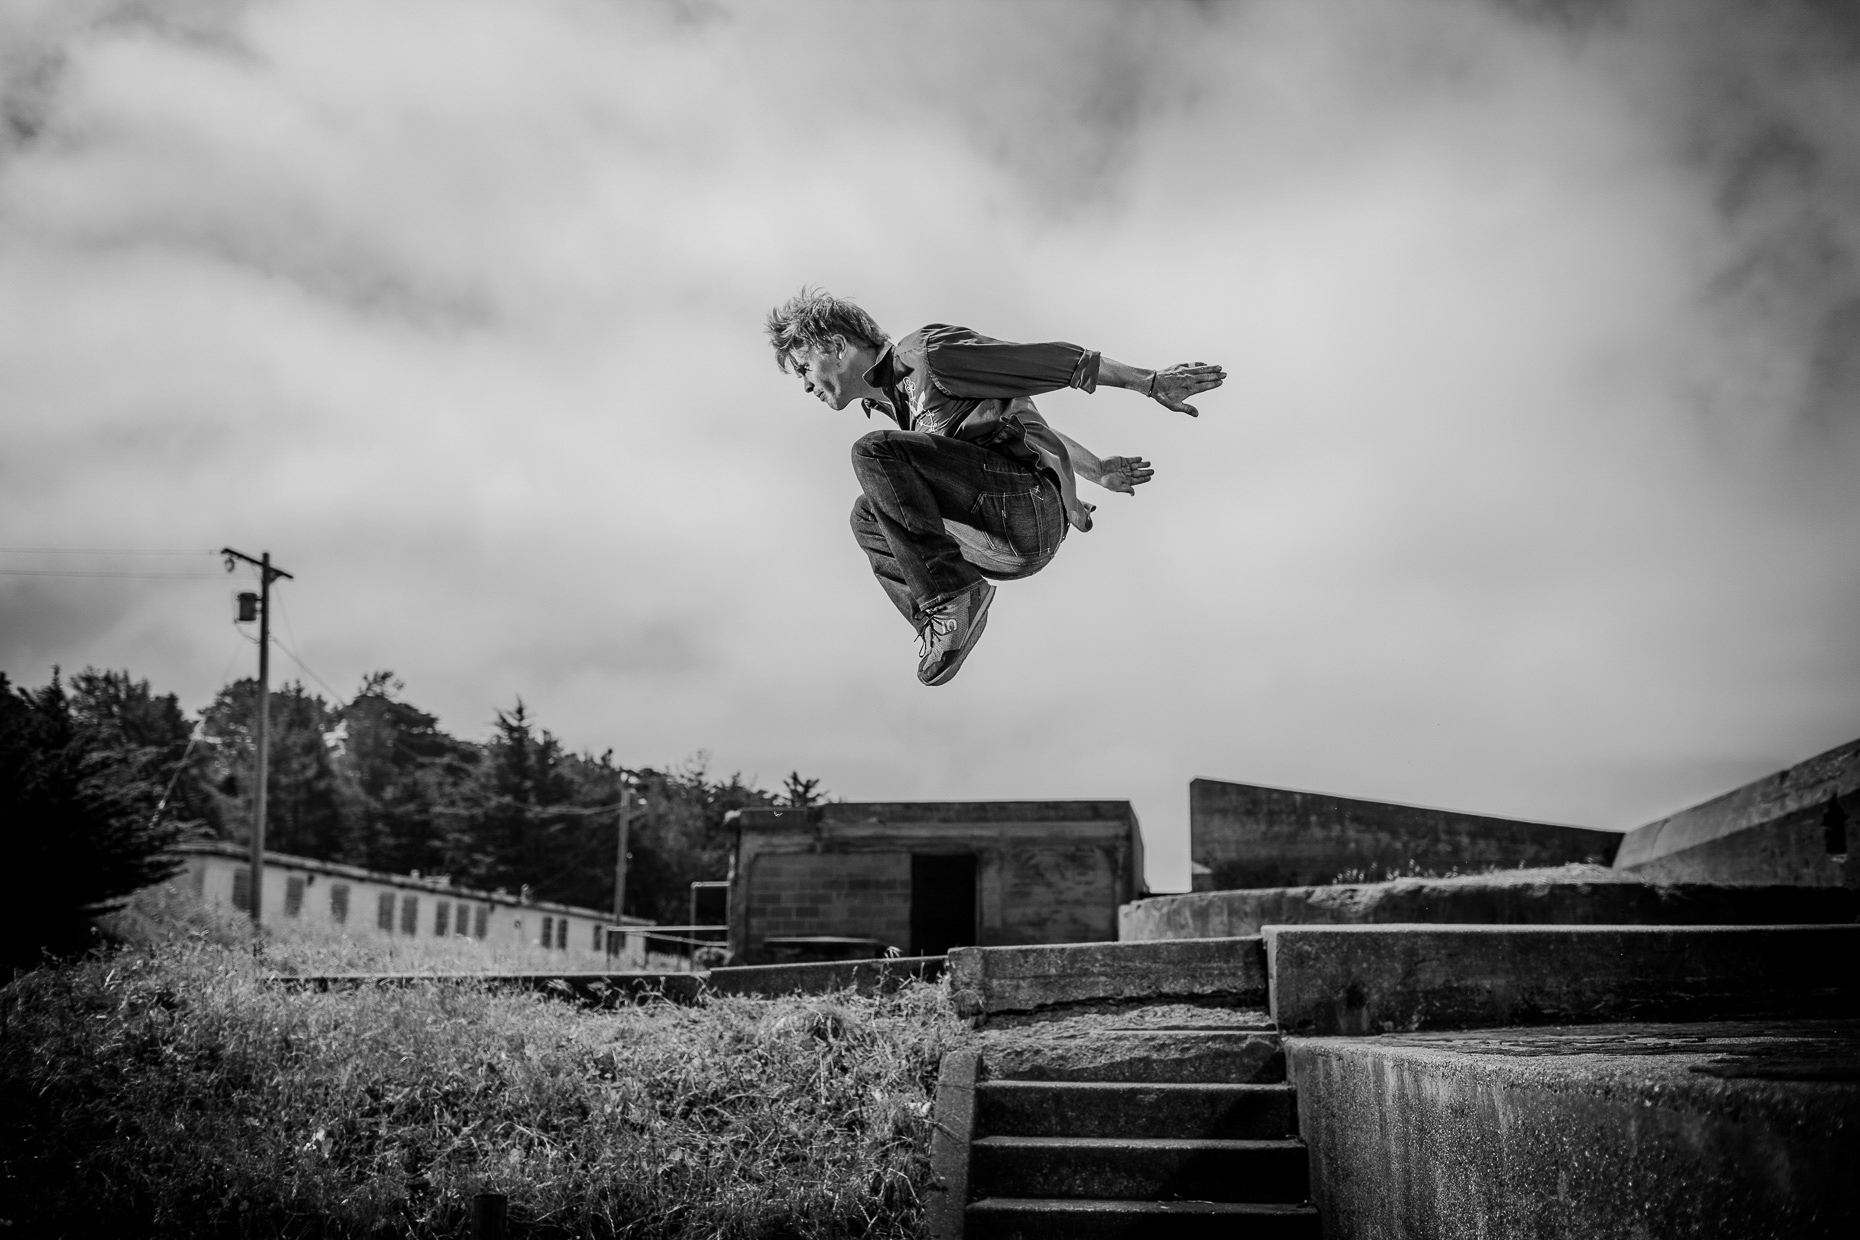 parkour freerunner athlete Brian Orosco flys between buildings at the Presidio army bunkers by andy batt